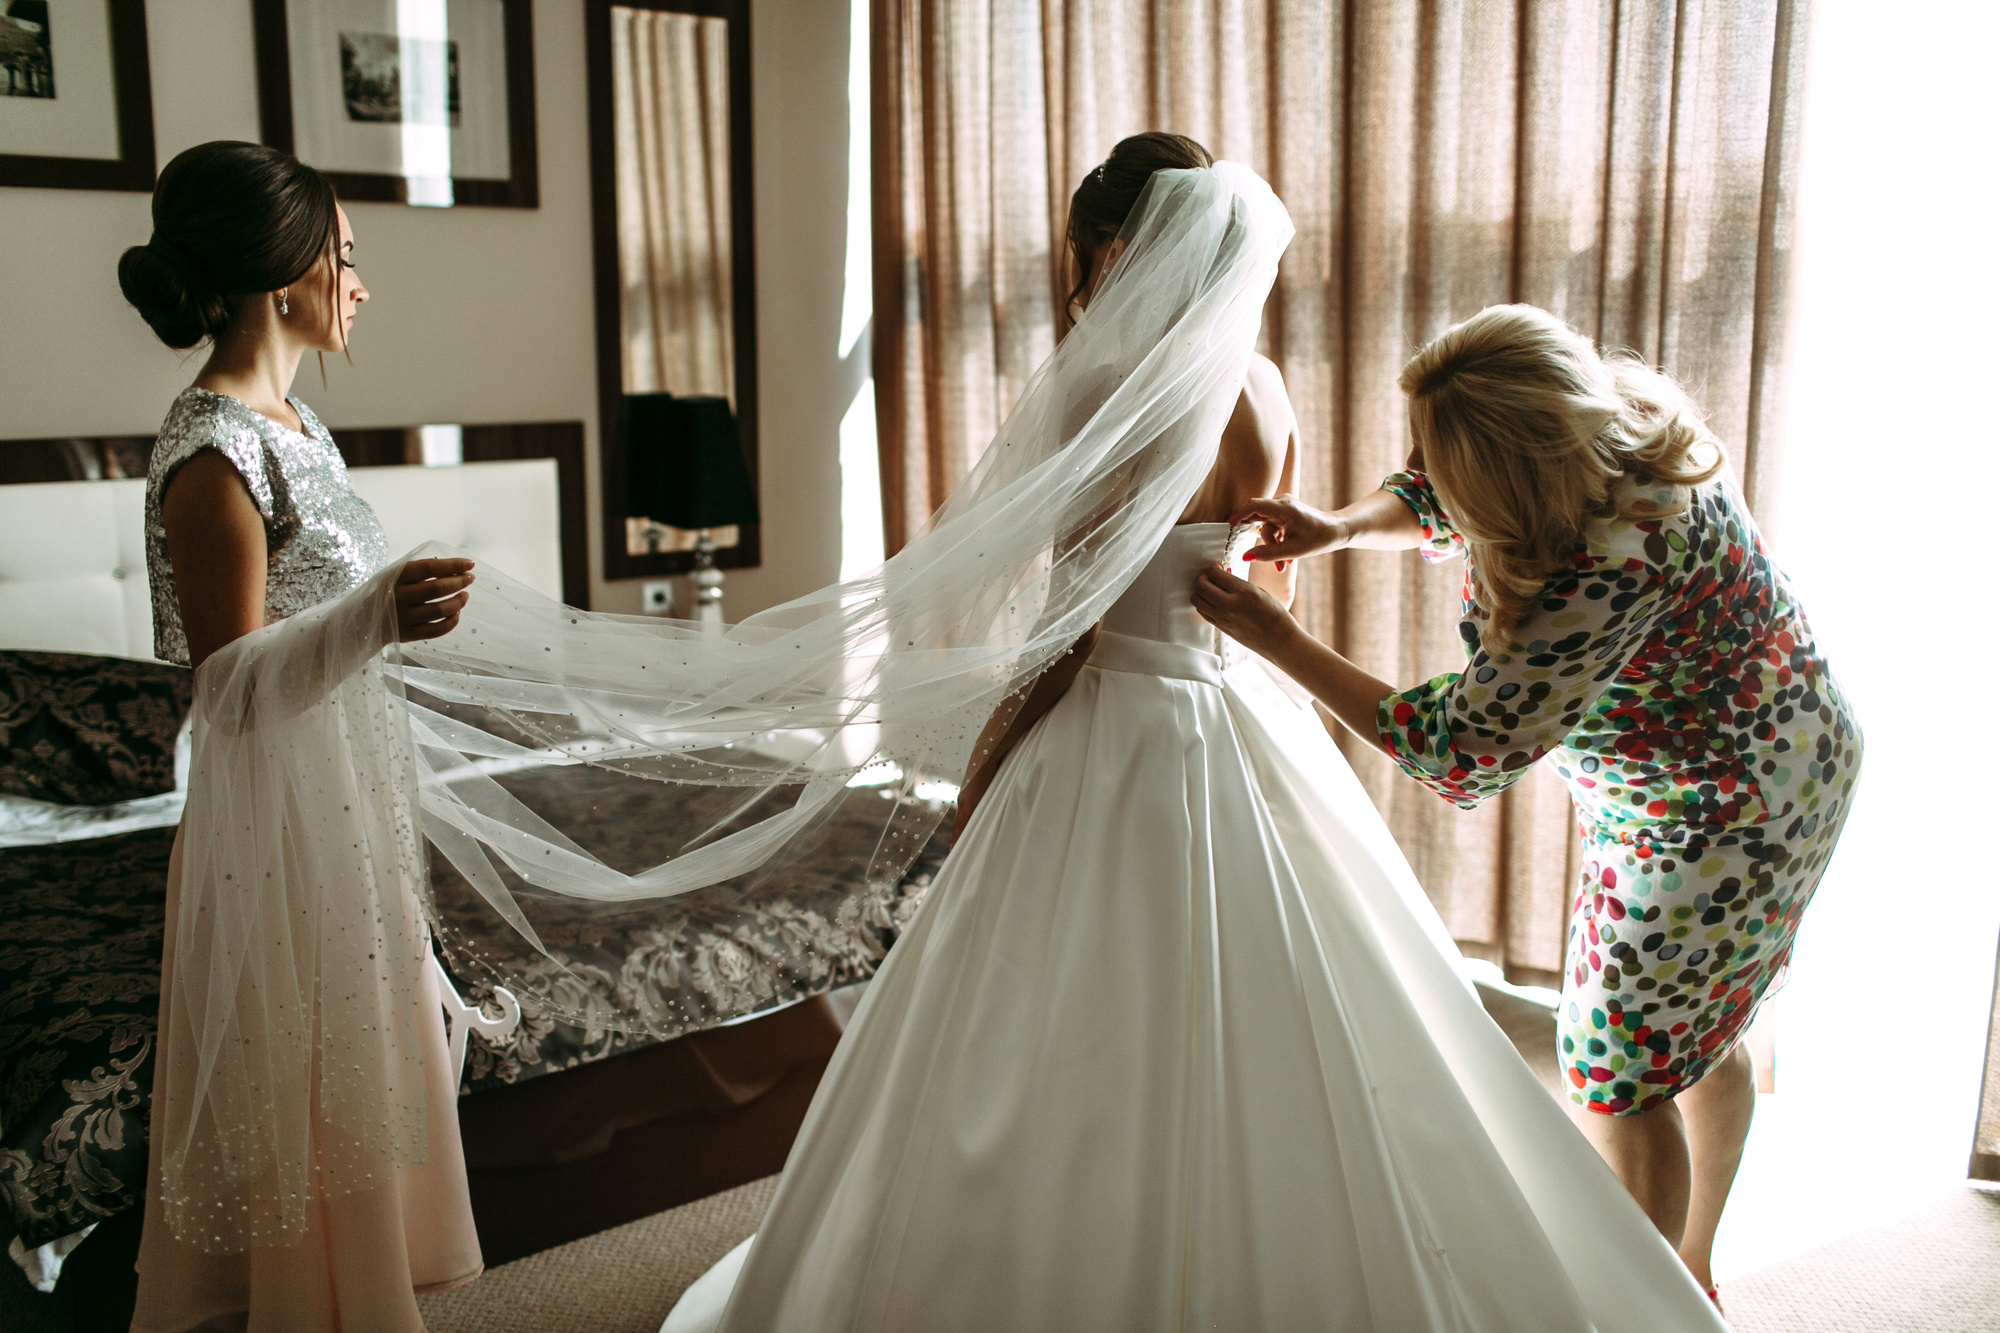 7 Mother Of The Bride Responsibilities You Should Know